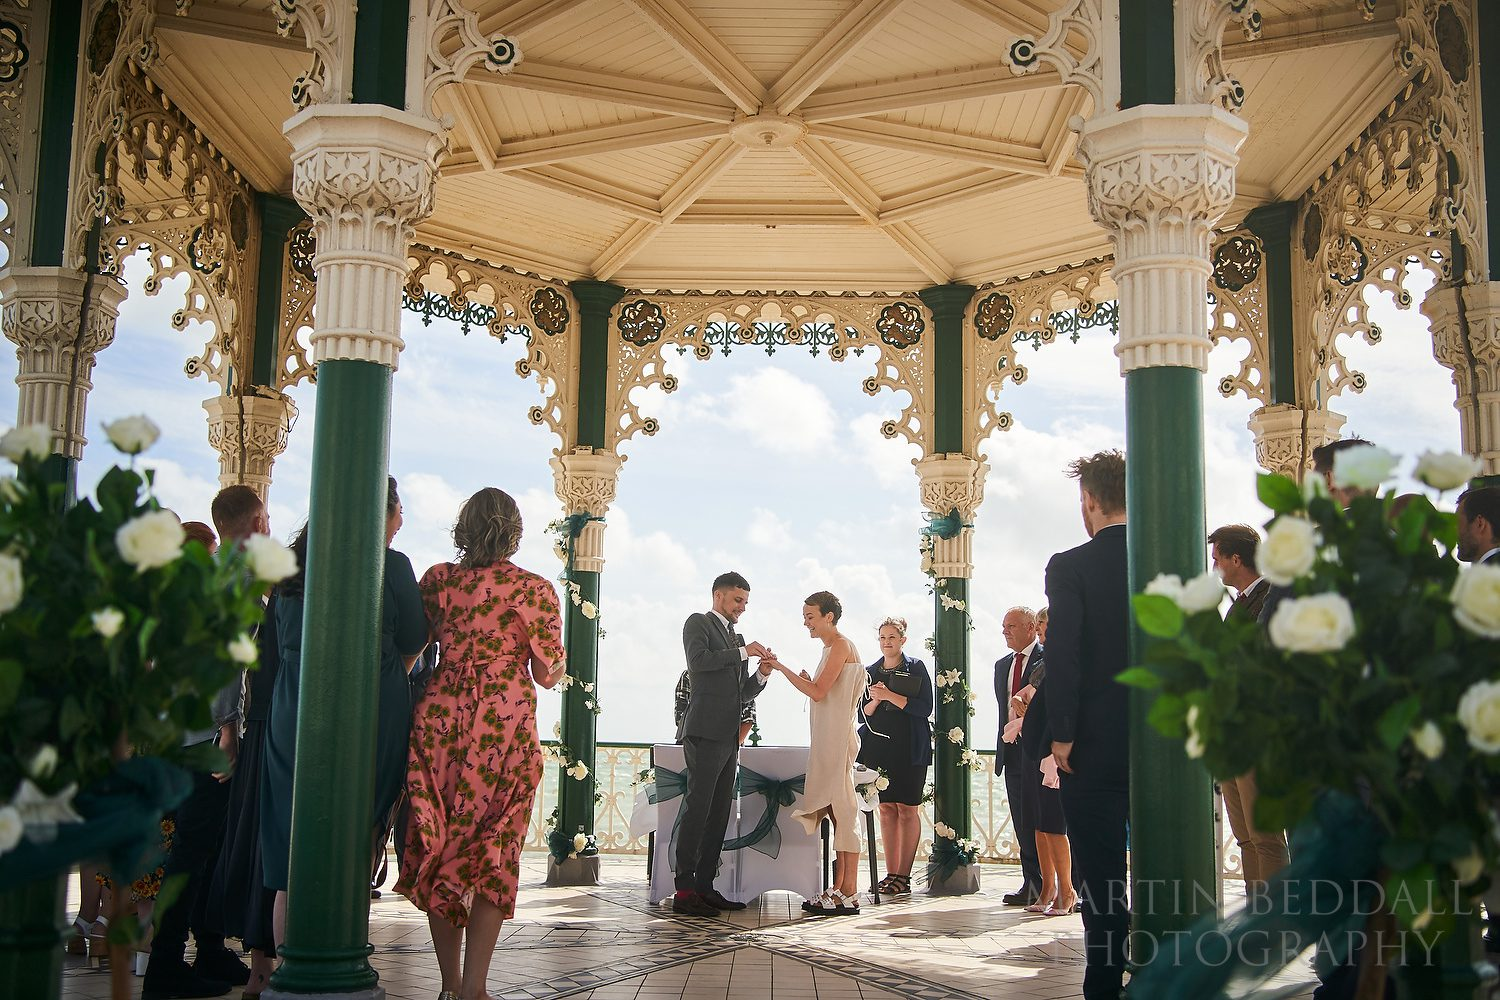 Wedding at the bandstand